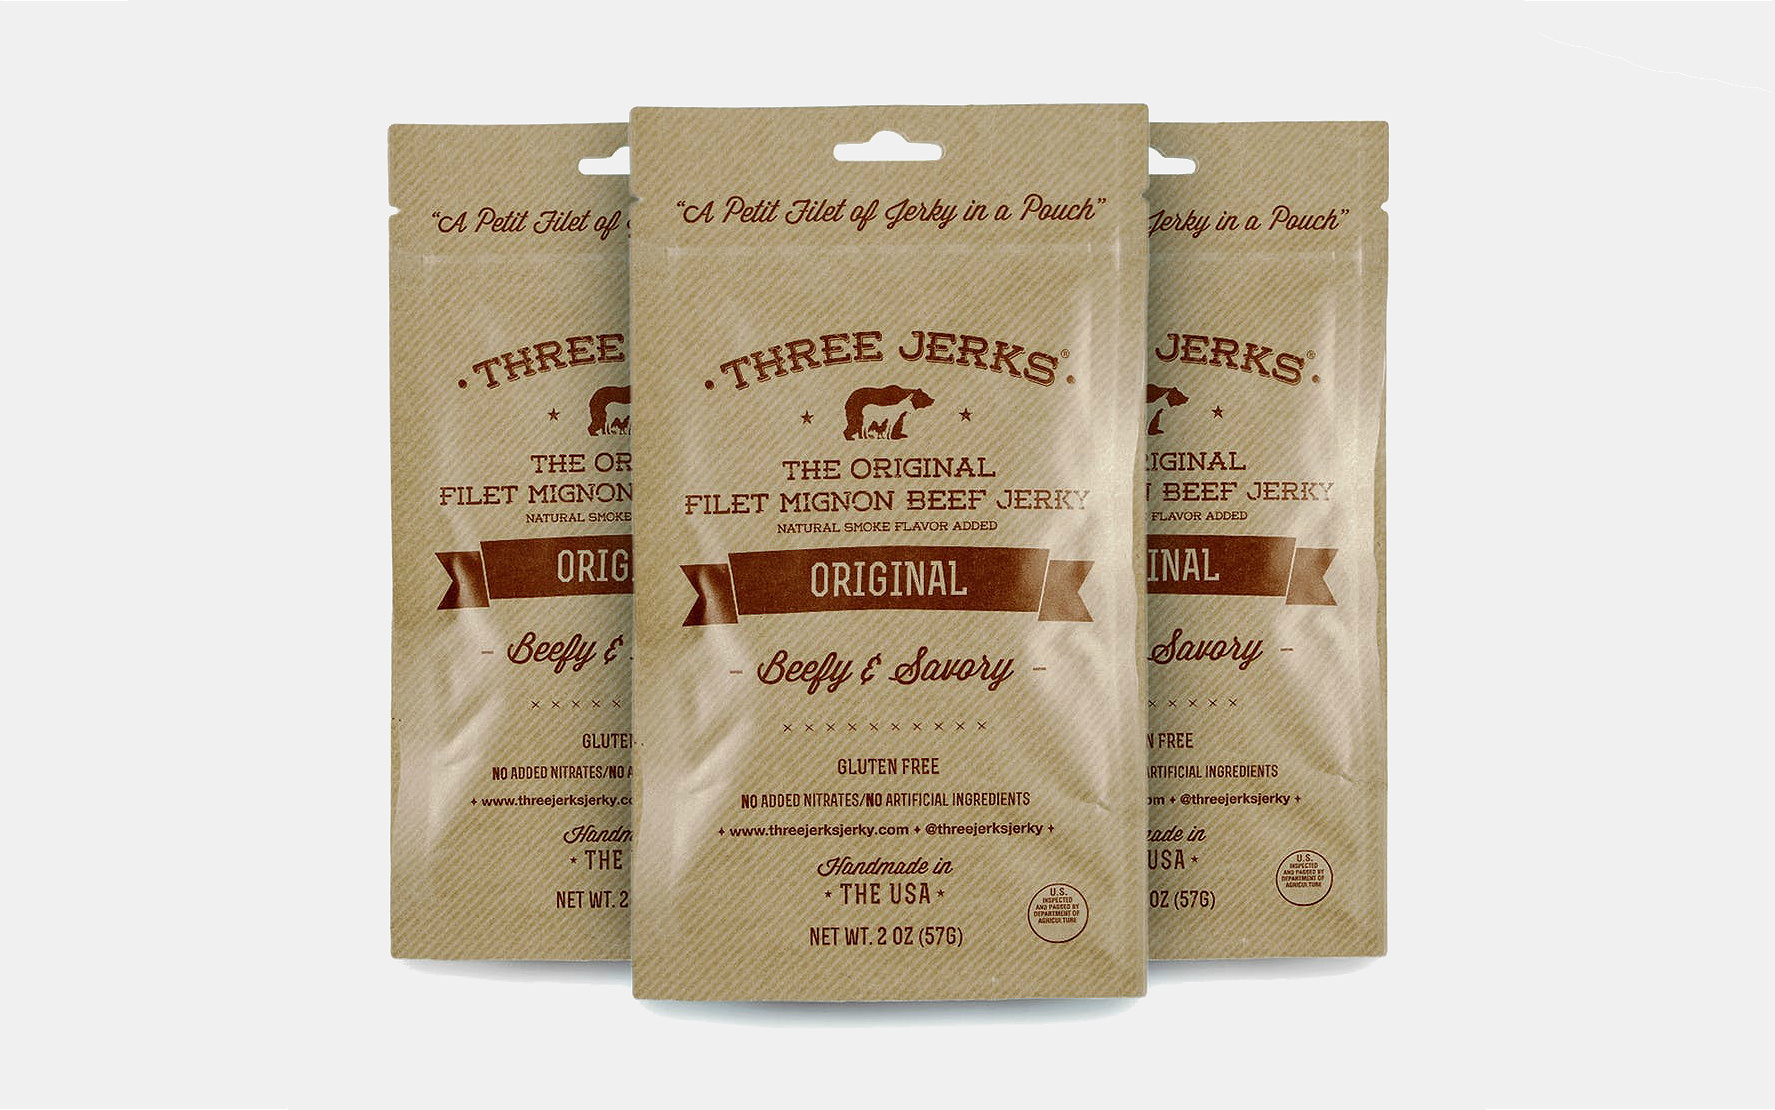 Three Jerks Filet Mignon Beef Jerky